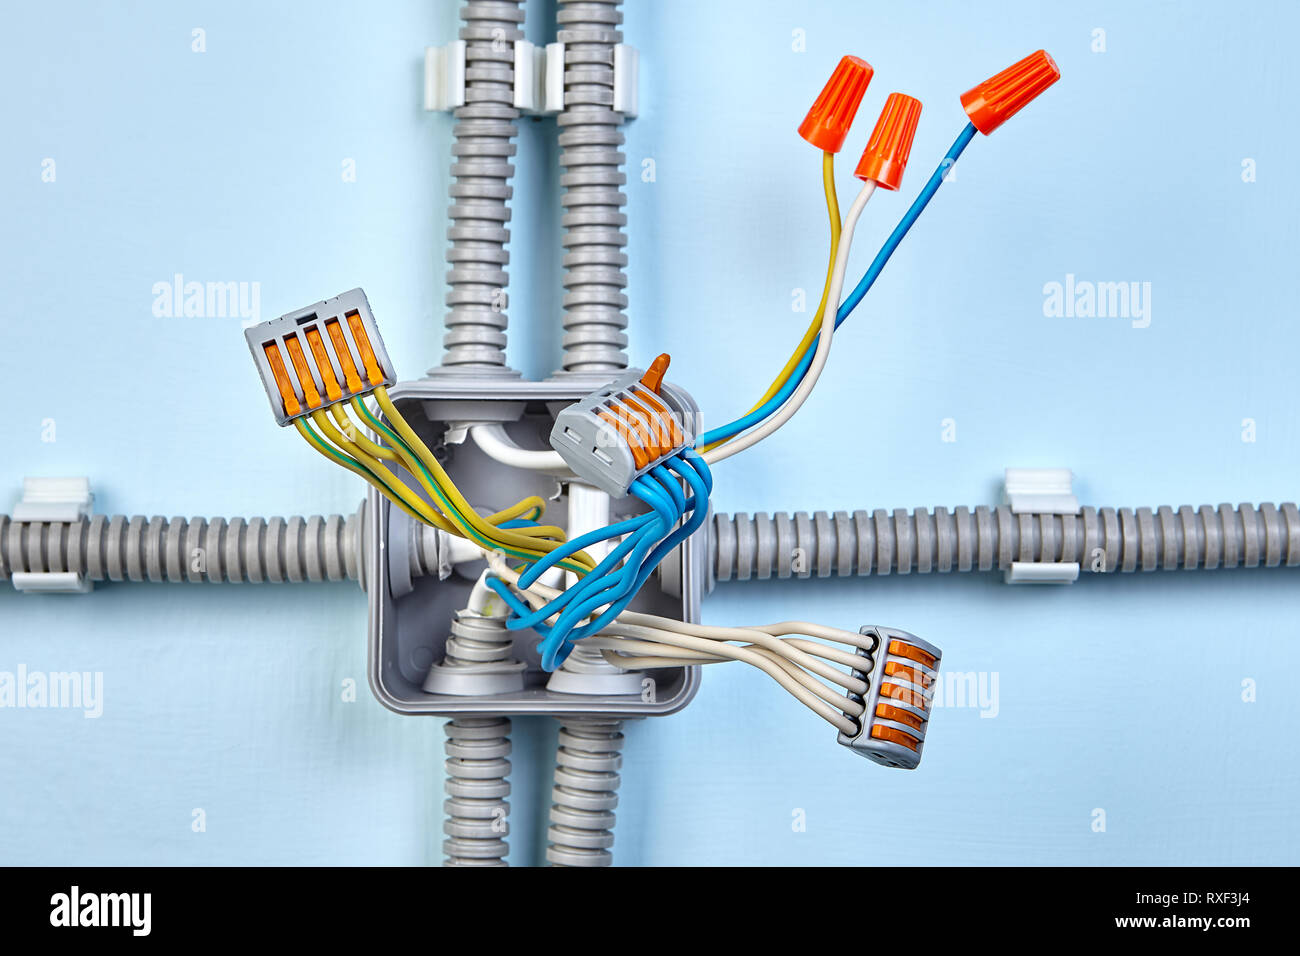 hight resolution of process of mounting electrical junction box with help of twist splice wire connectors and push wire connector